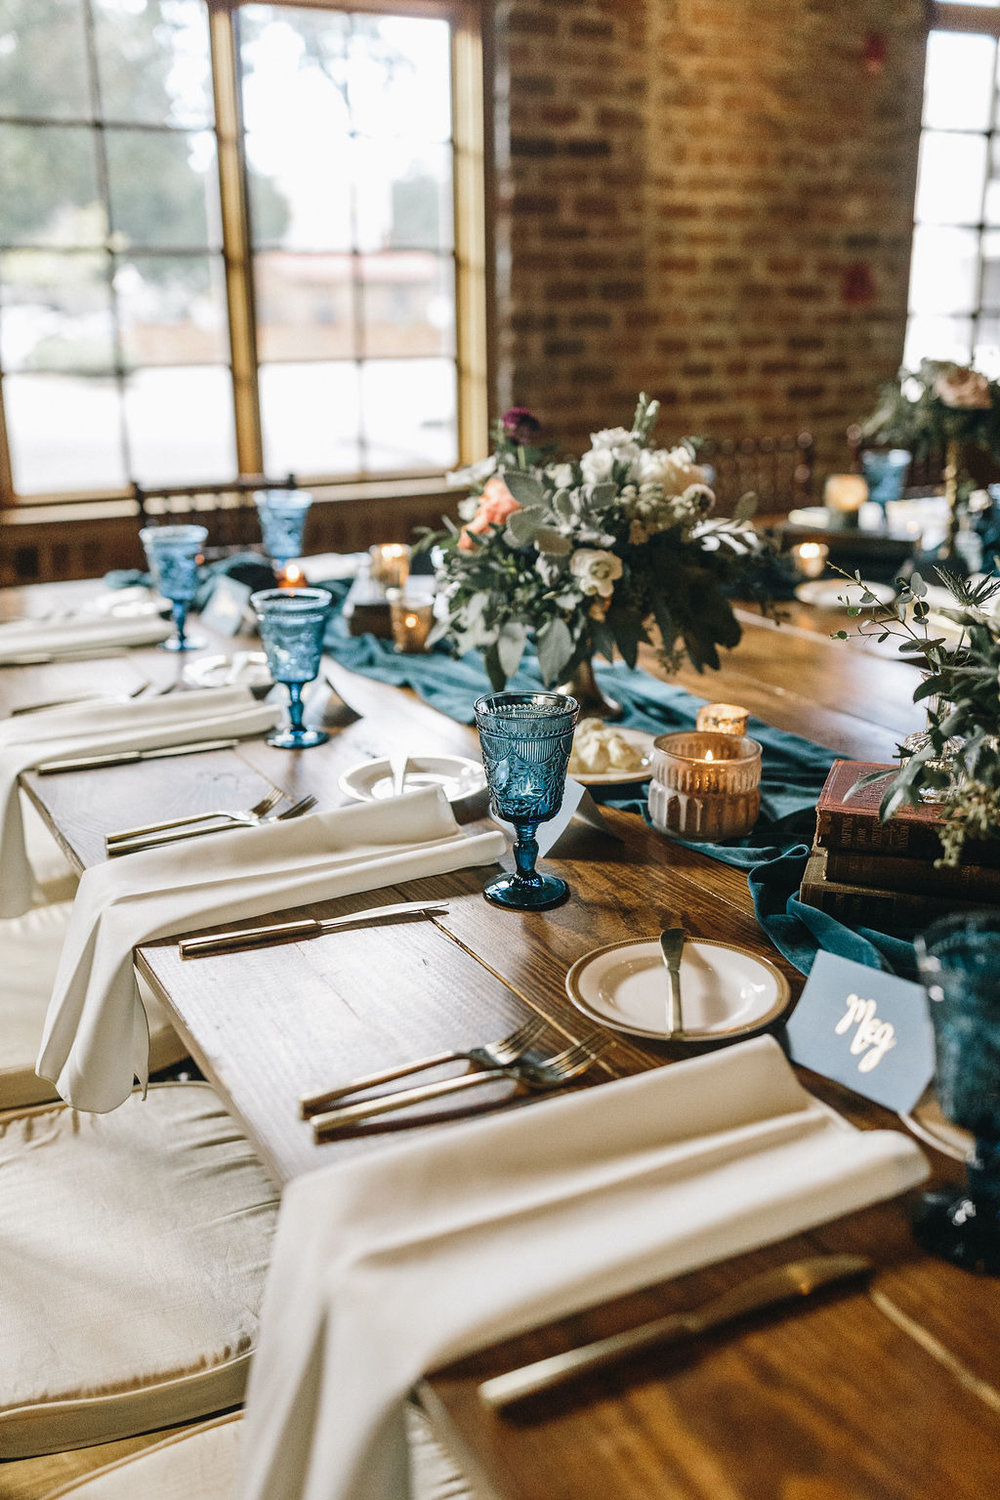 ivory_and_beau_savannah_bridal_shop_ivory_and_beau_couple_regan_and_brian_mackensey_alexander_photography_charles_h_morris_center_wedding_savannah_wedding_planner_savannah_florist_30.jpg